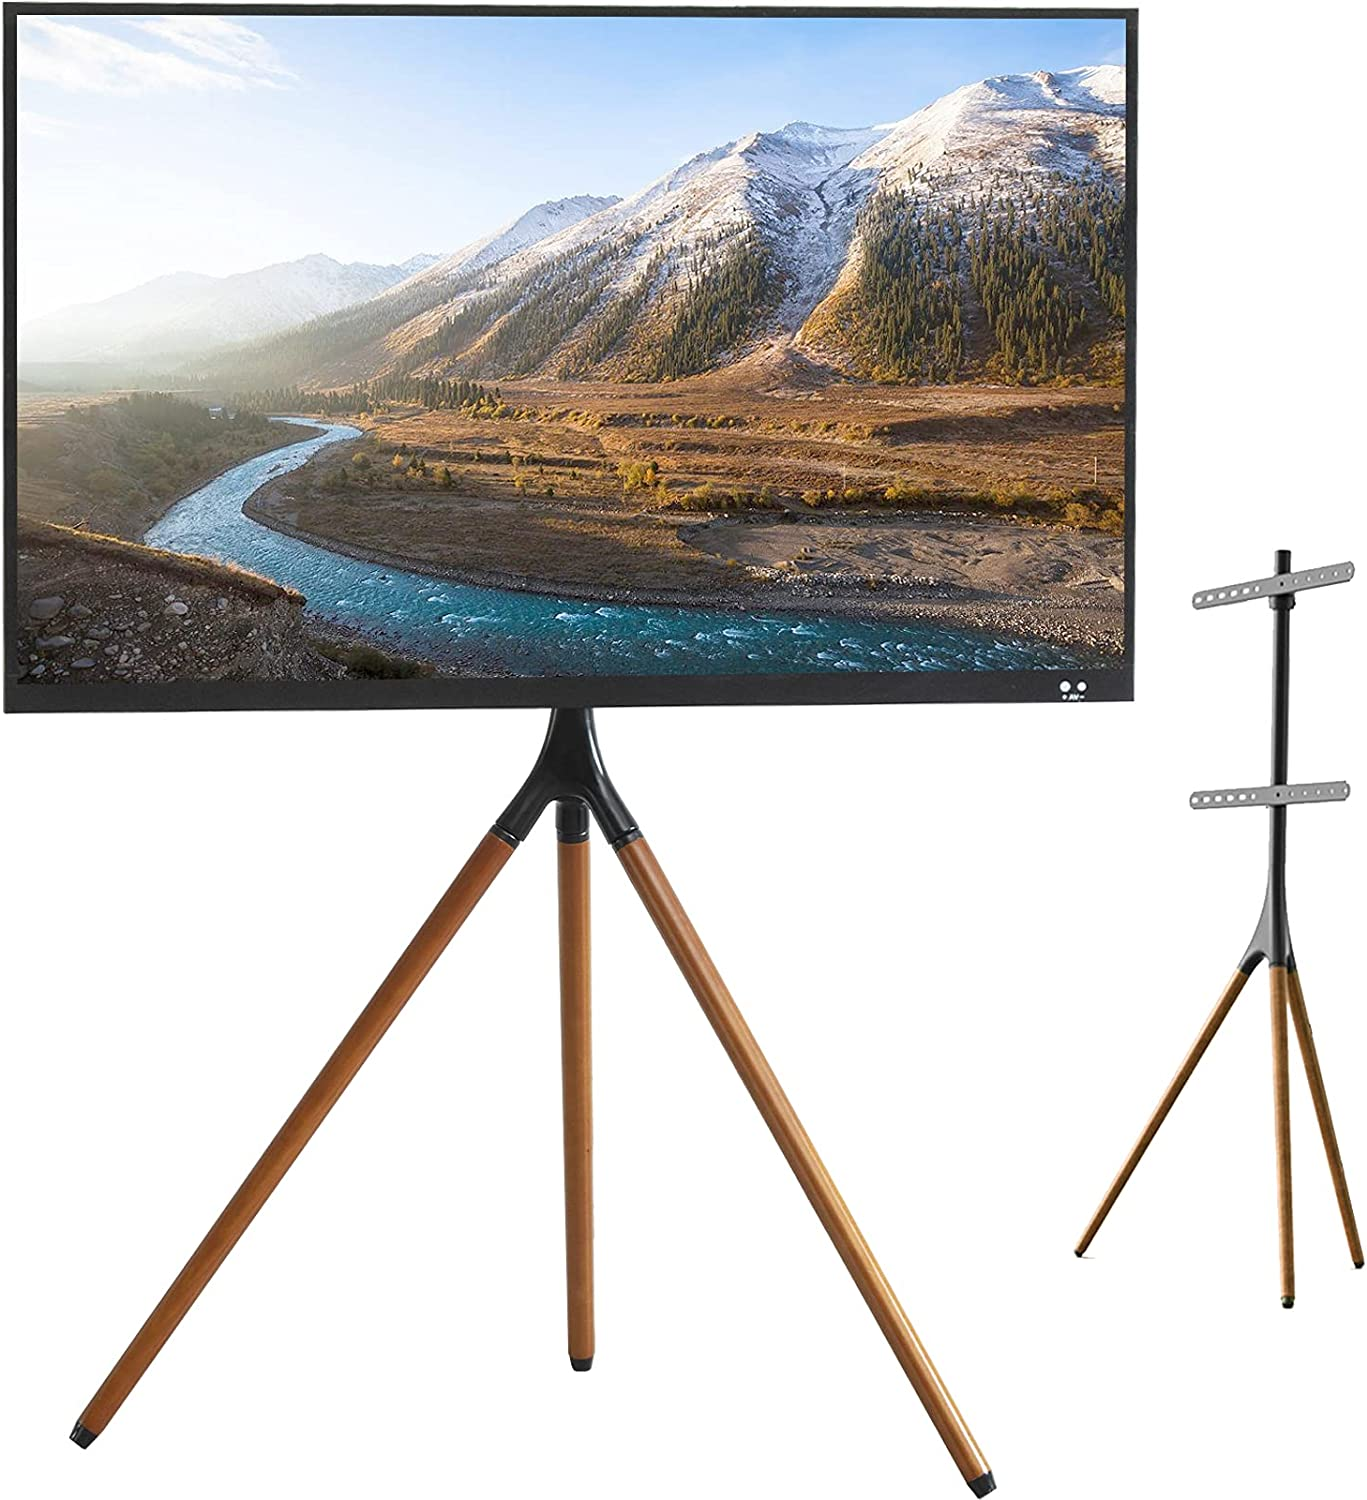 K Knowbody Tripod TV Display Height Spring new Max 69% OFF work Adjustable Floor Stand S